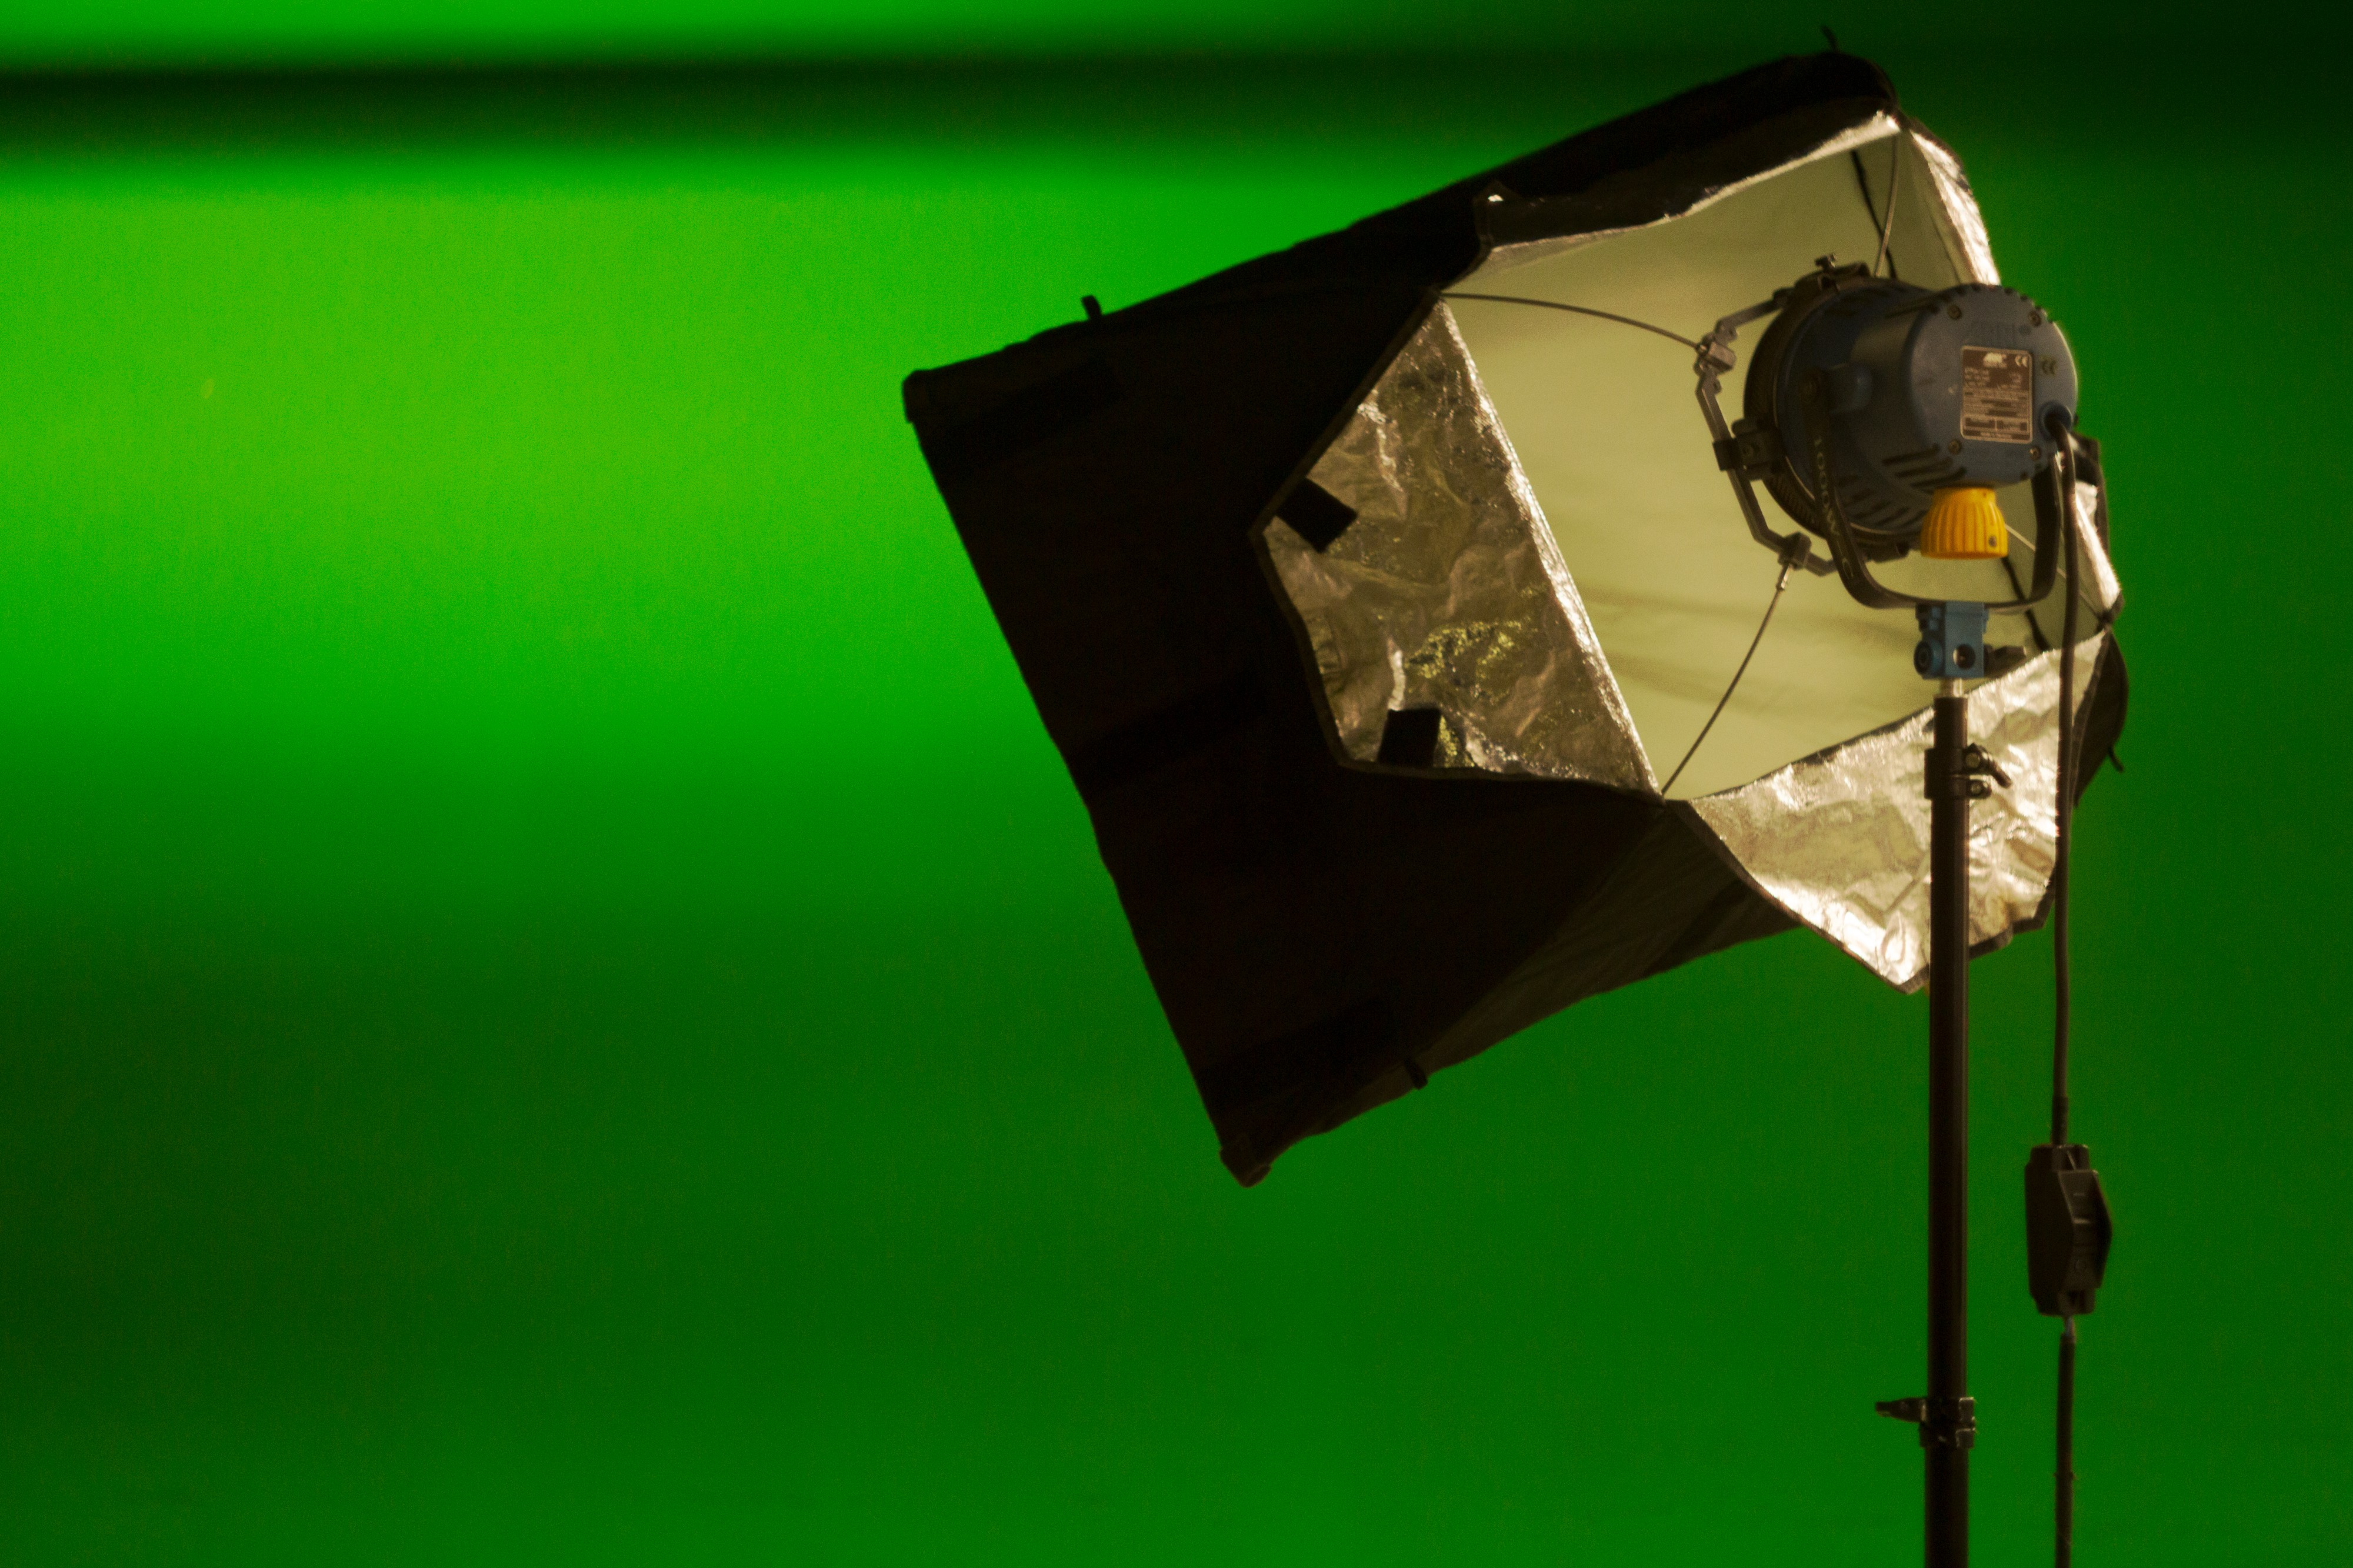 Creating a Green Screen App using the Chroma Key Effect in